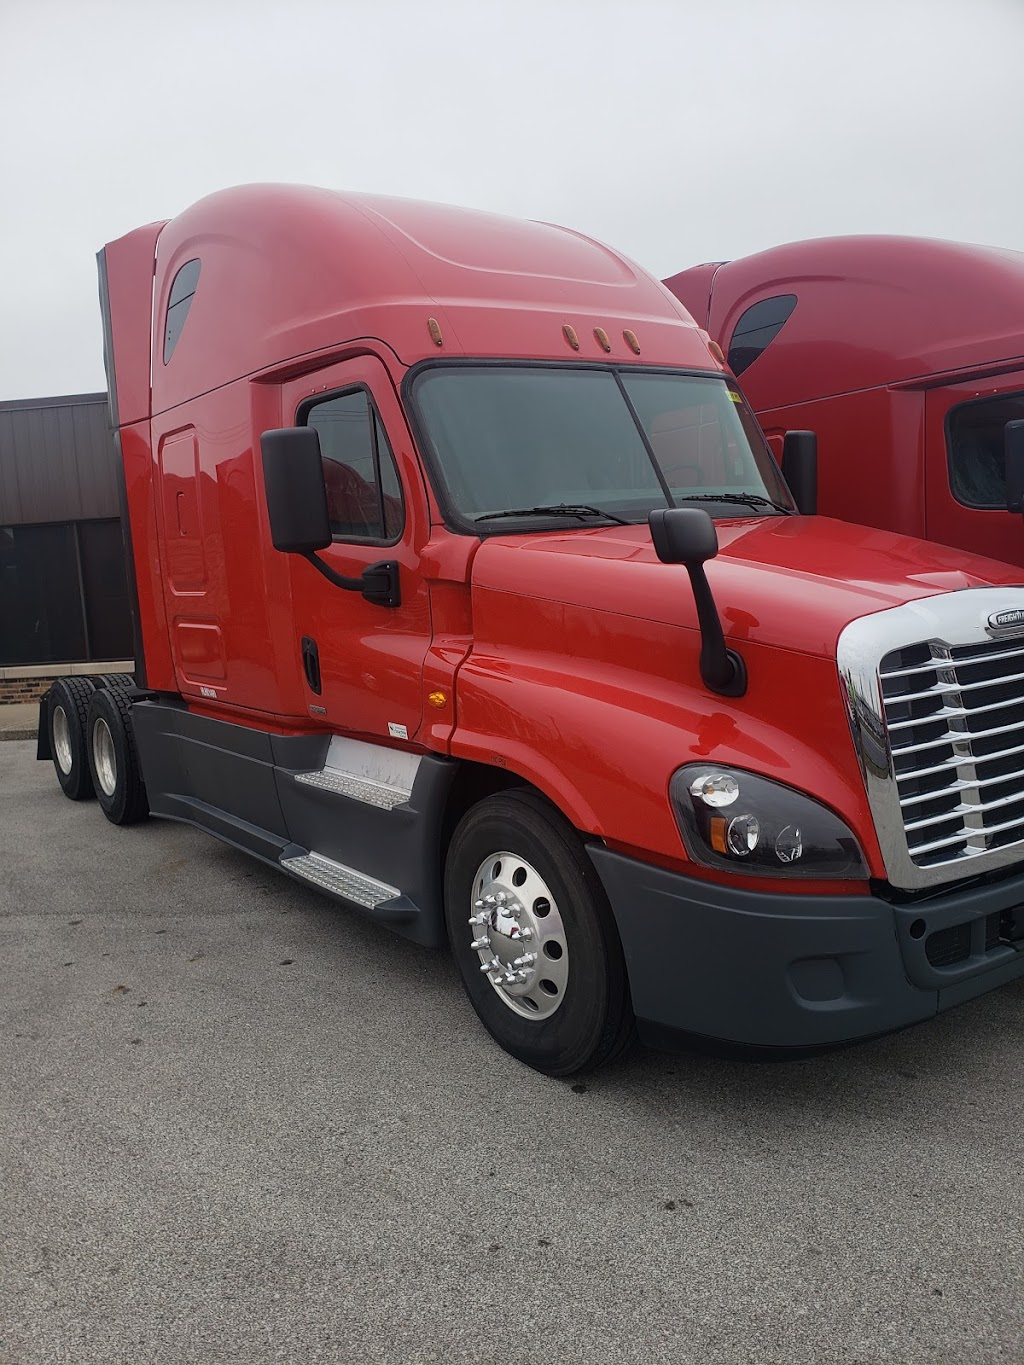 Lone Mountain Truck Leasing - store  | Photo 7 of 10 | Address: 600 W 172nd St, South Holland, IL 60473, USA | Phone: (708) 794-3335